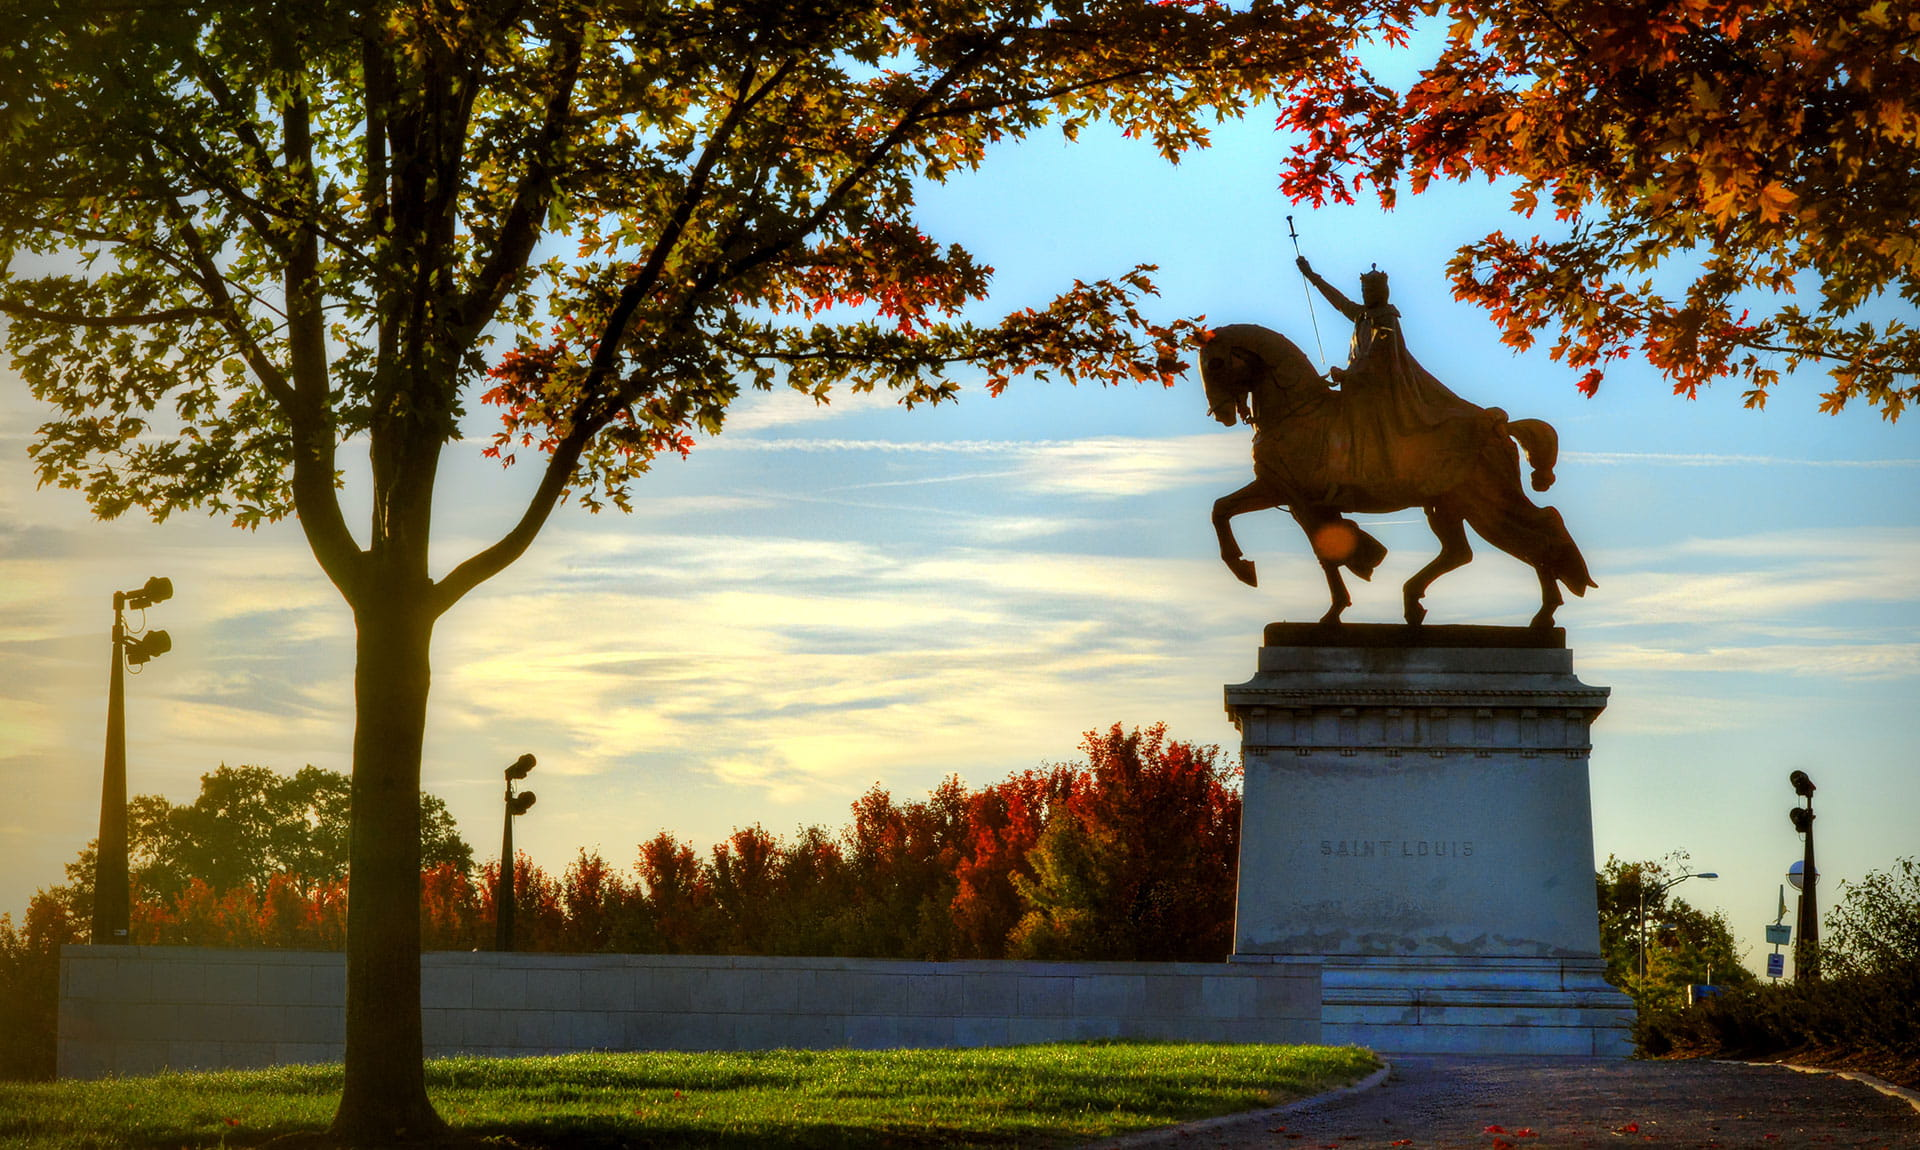 King Louis IX of France statue in Forest Park, St. Louis